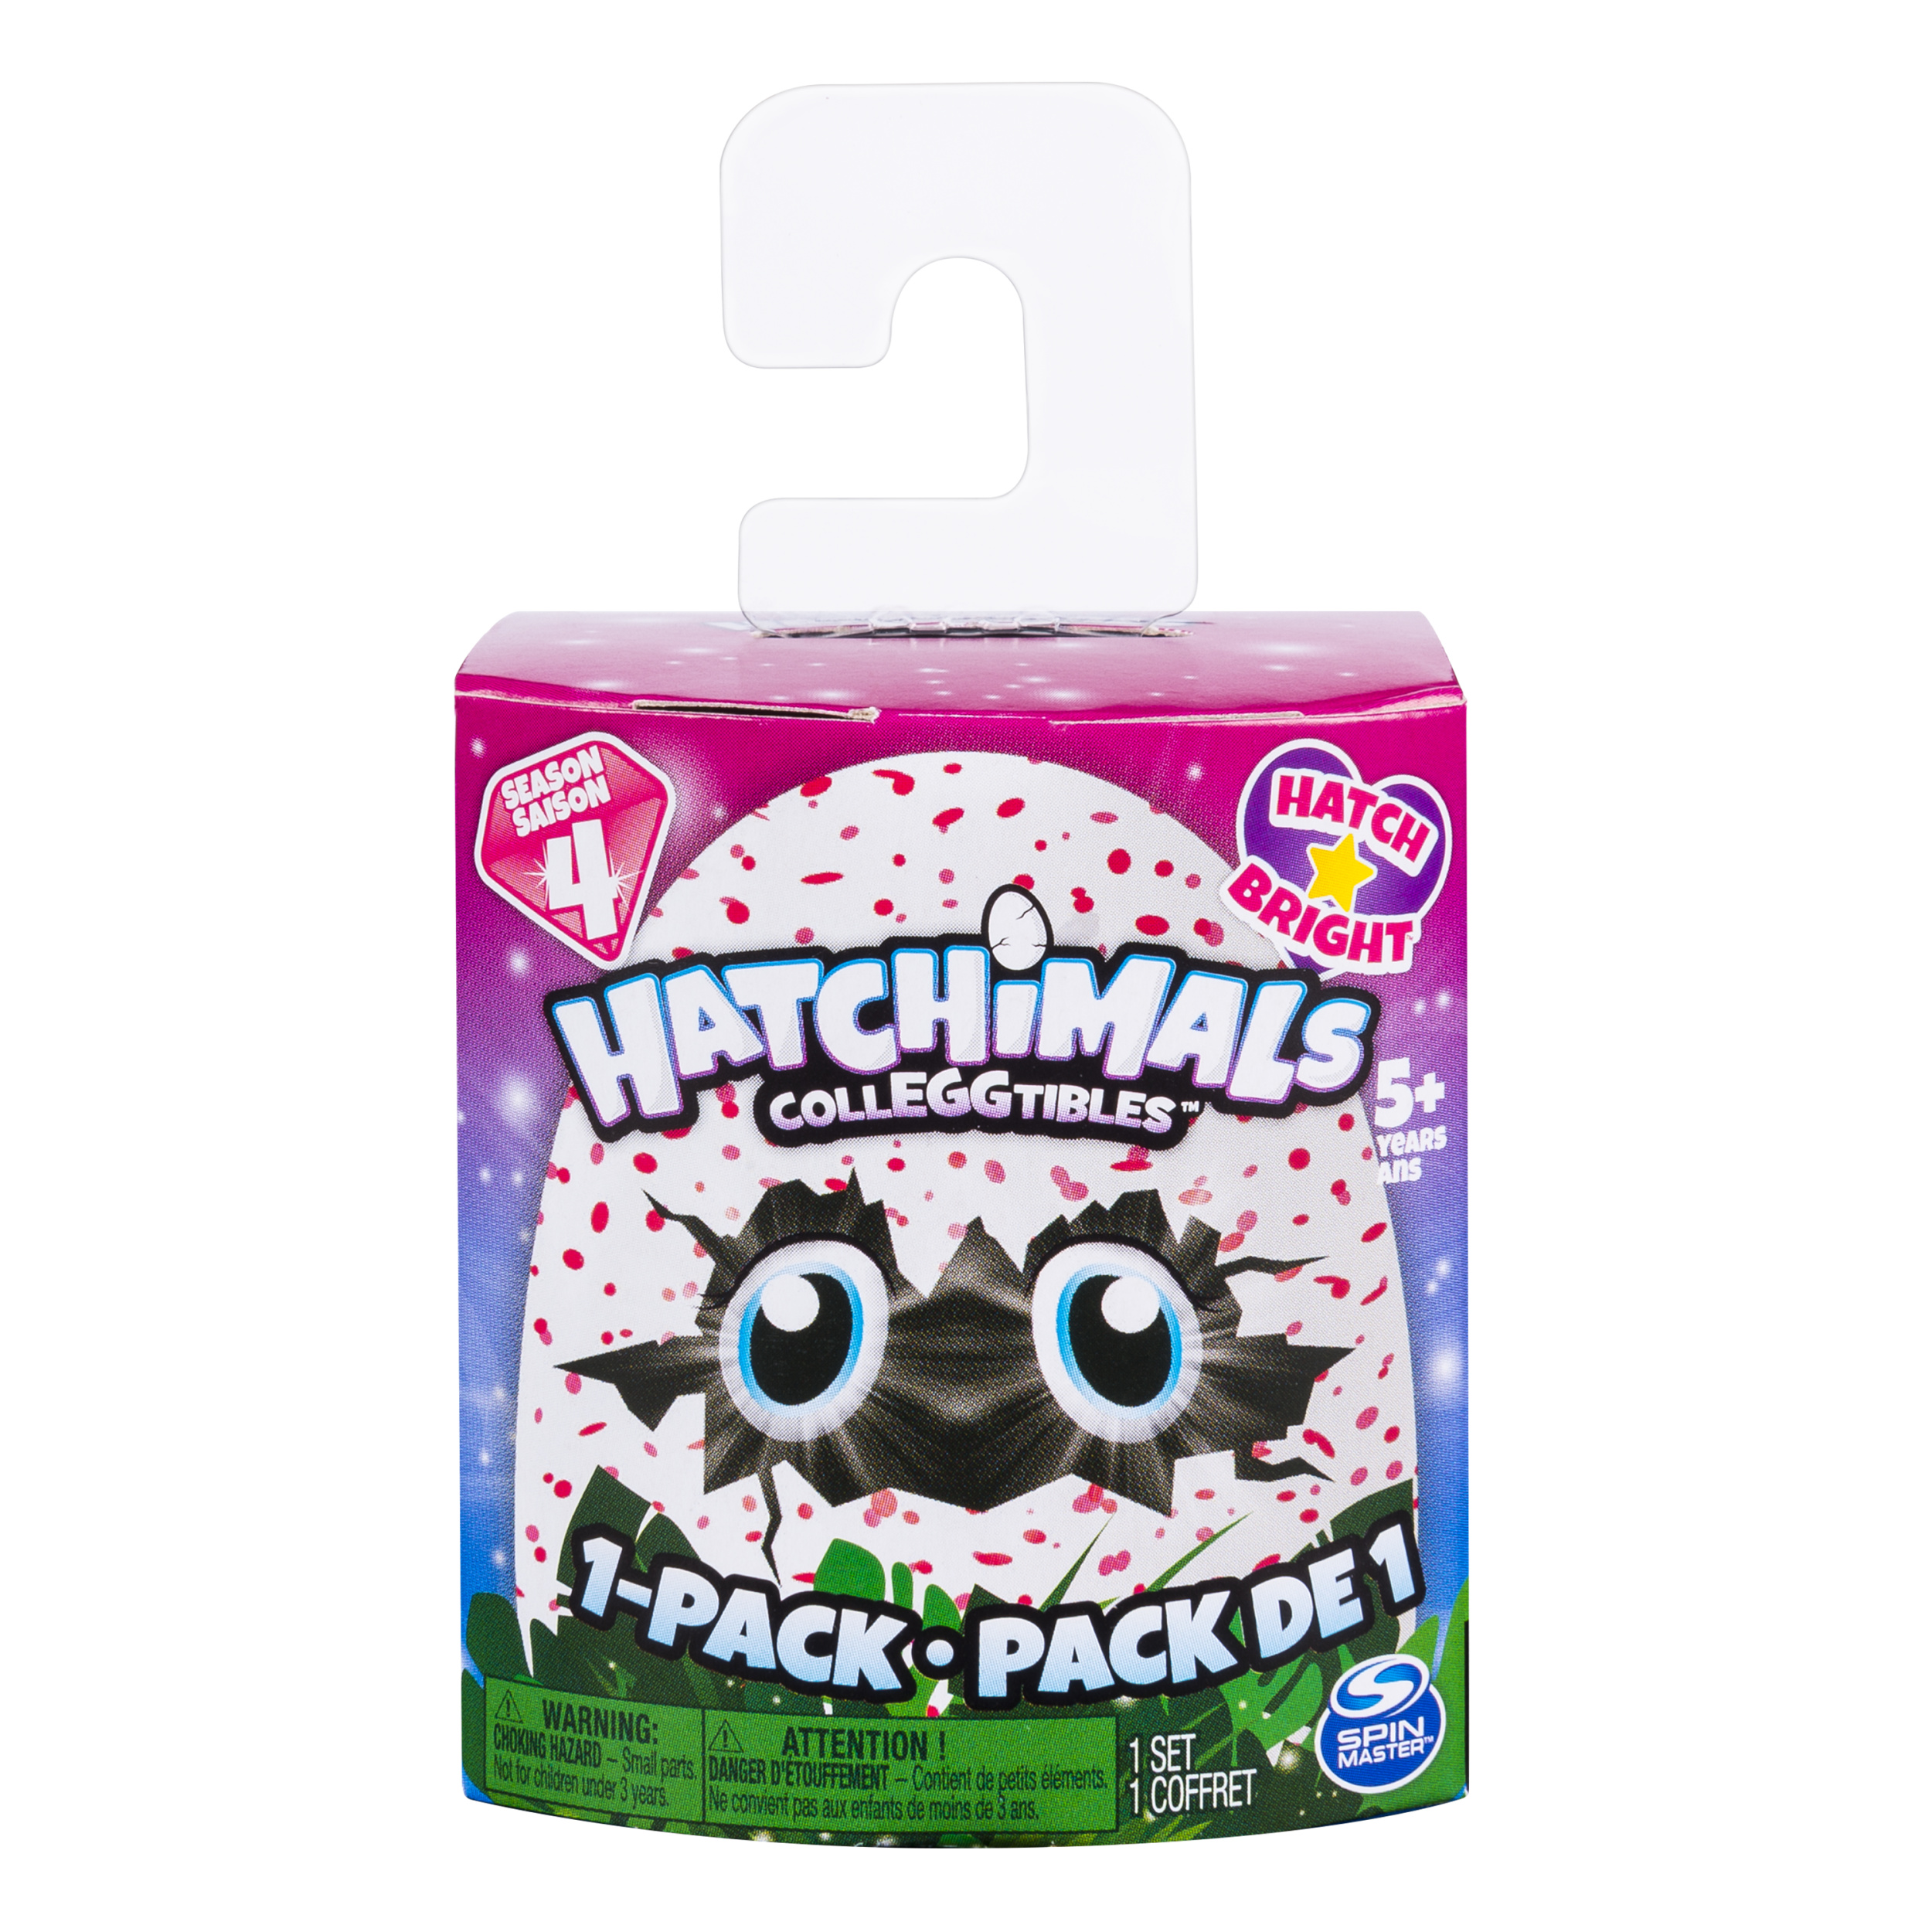 Hatchimals CollEGGtibles ‐ 1 Pack with Season 4 Hatchimals CollEGGtible, for Ages 5 and Up